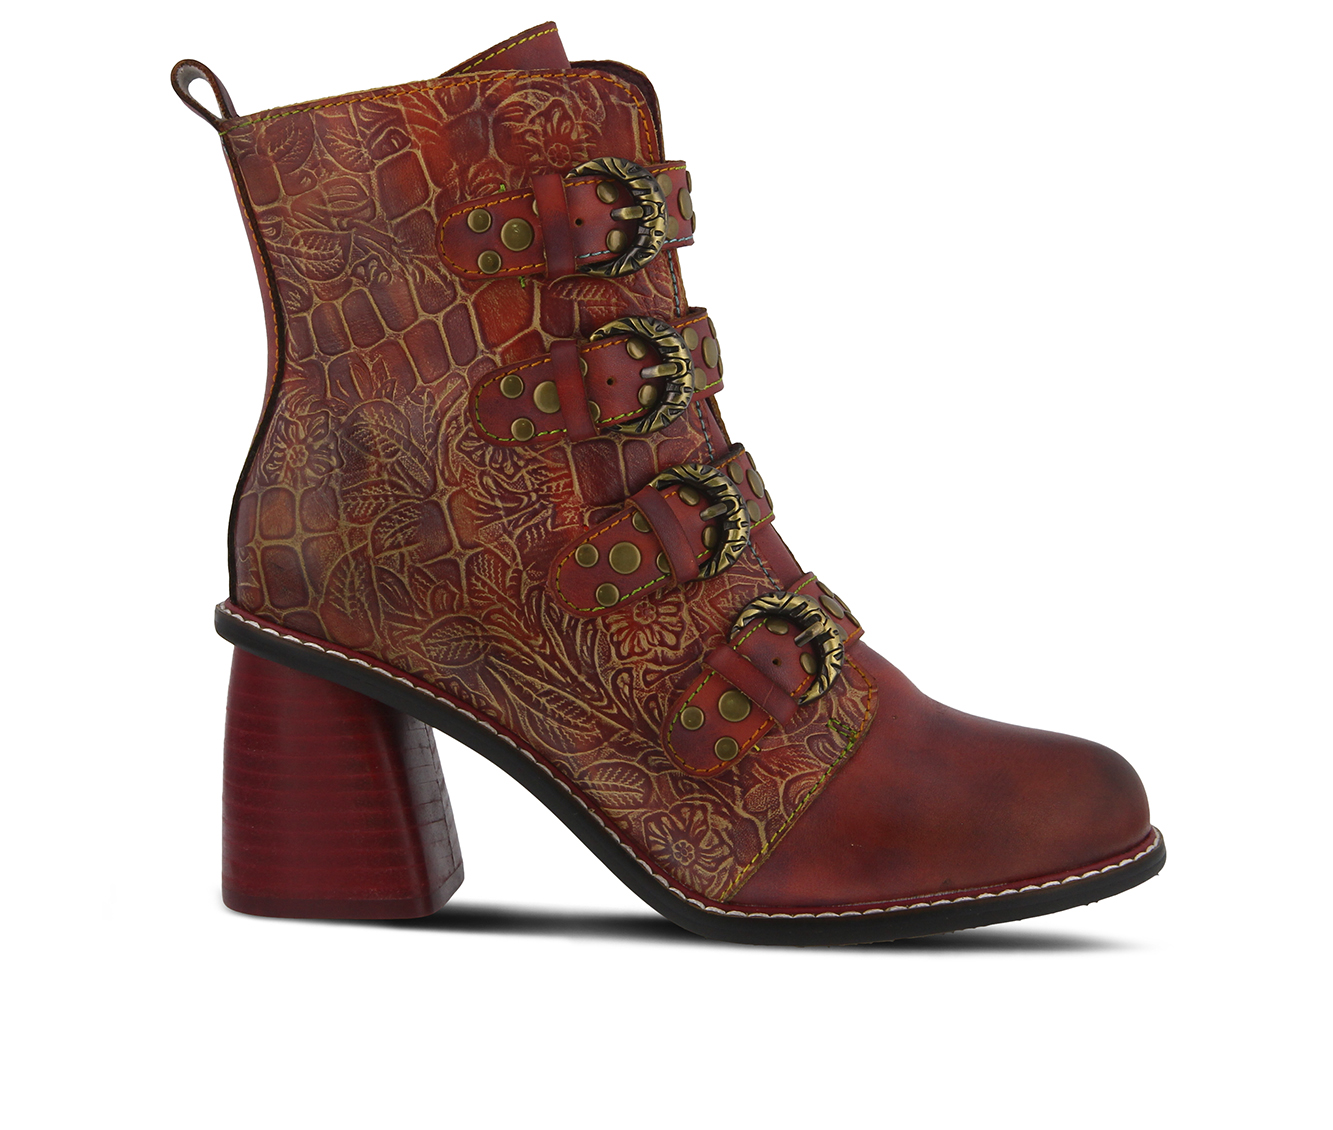 L'Artiste Wonderland Women's Boots (Red Leather)